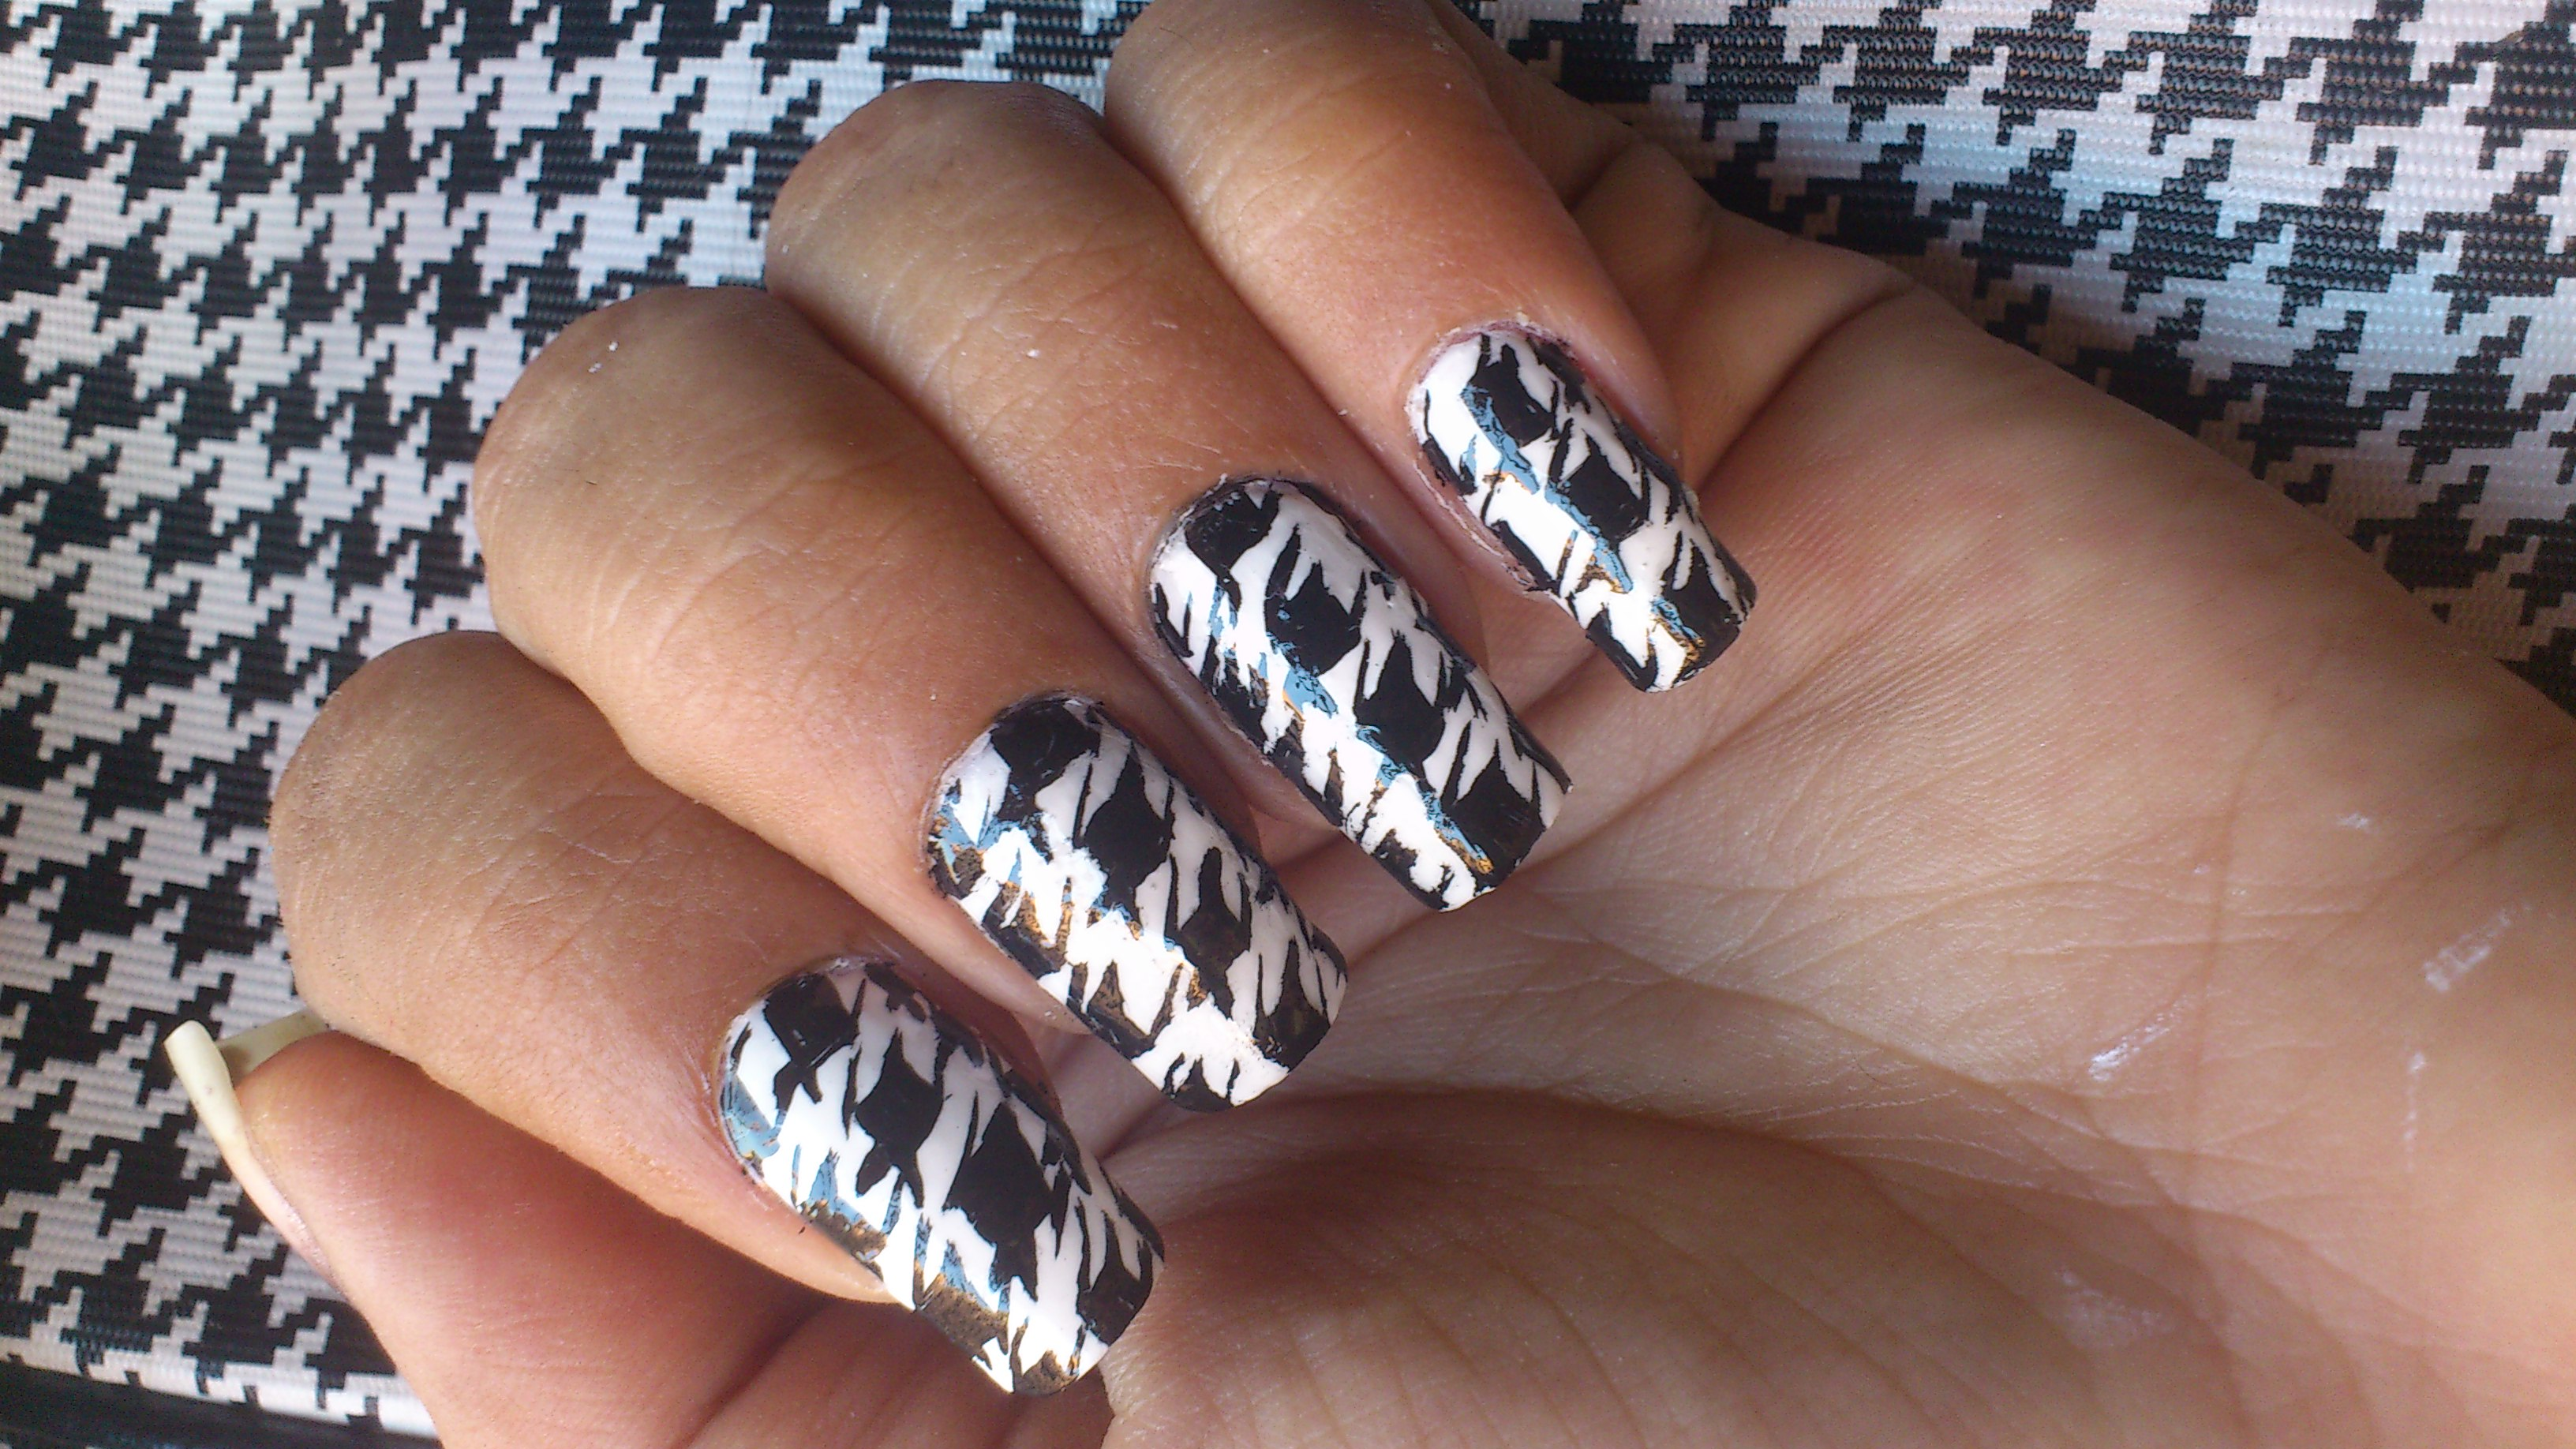 19 Black And White Patterns Art Designs Step By Step Images Nail Polish Designs Step By Step